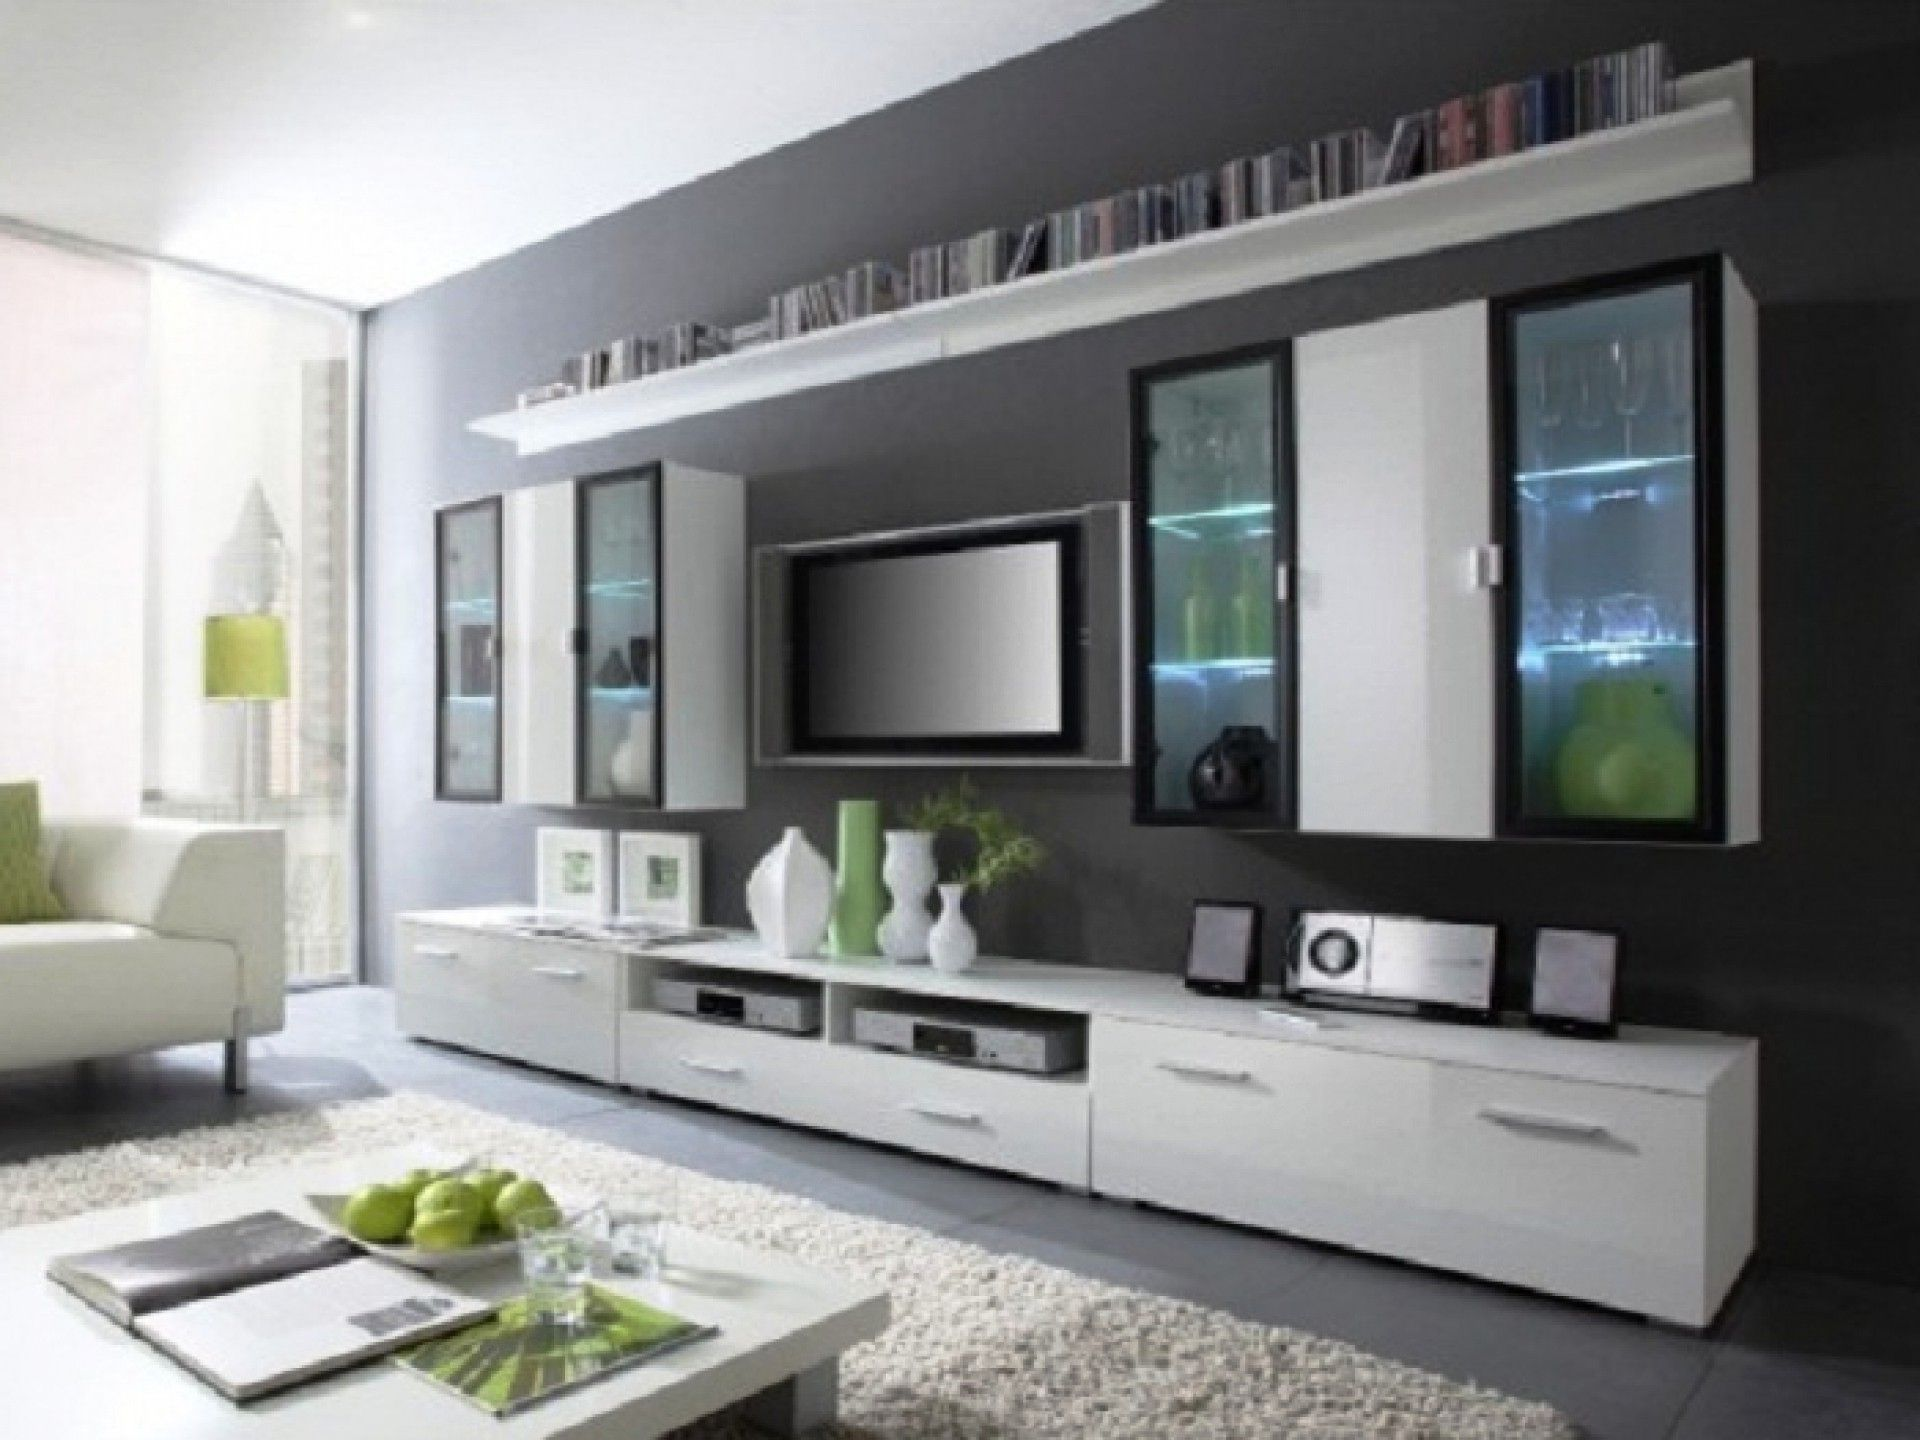 Creative And Modern Tv Wall Mount Ideas For Your Room Tvwallmount Tags Tv Wall Mount Ideas Wall Mount Tv Modern Tv Wall Living Room Tv Wall Wall Mounted Tv